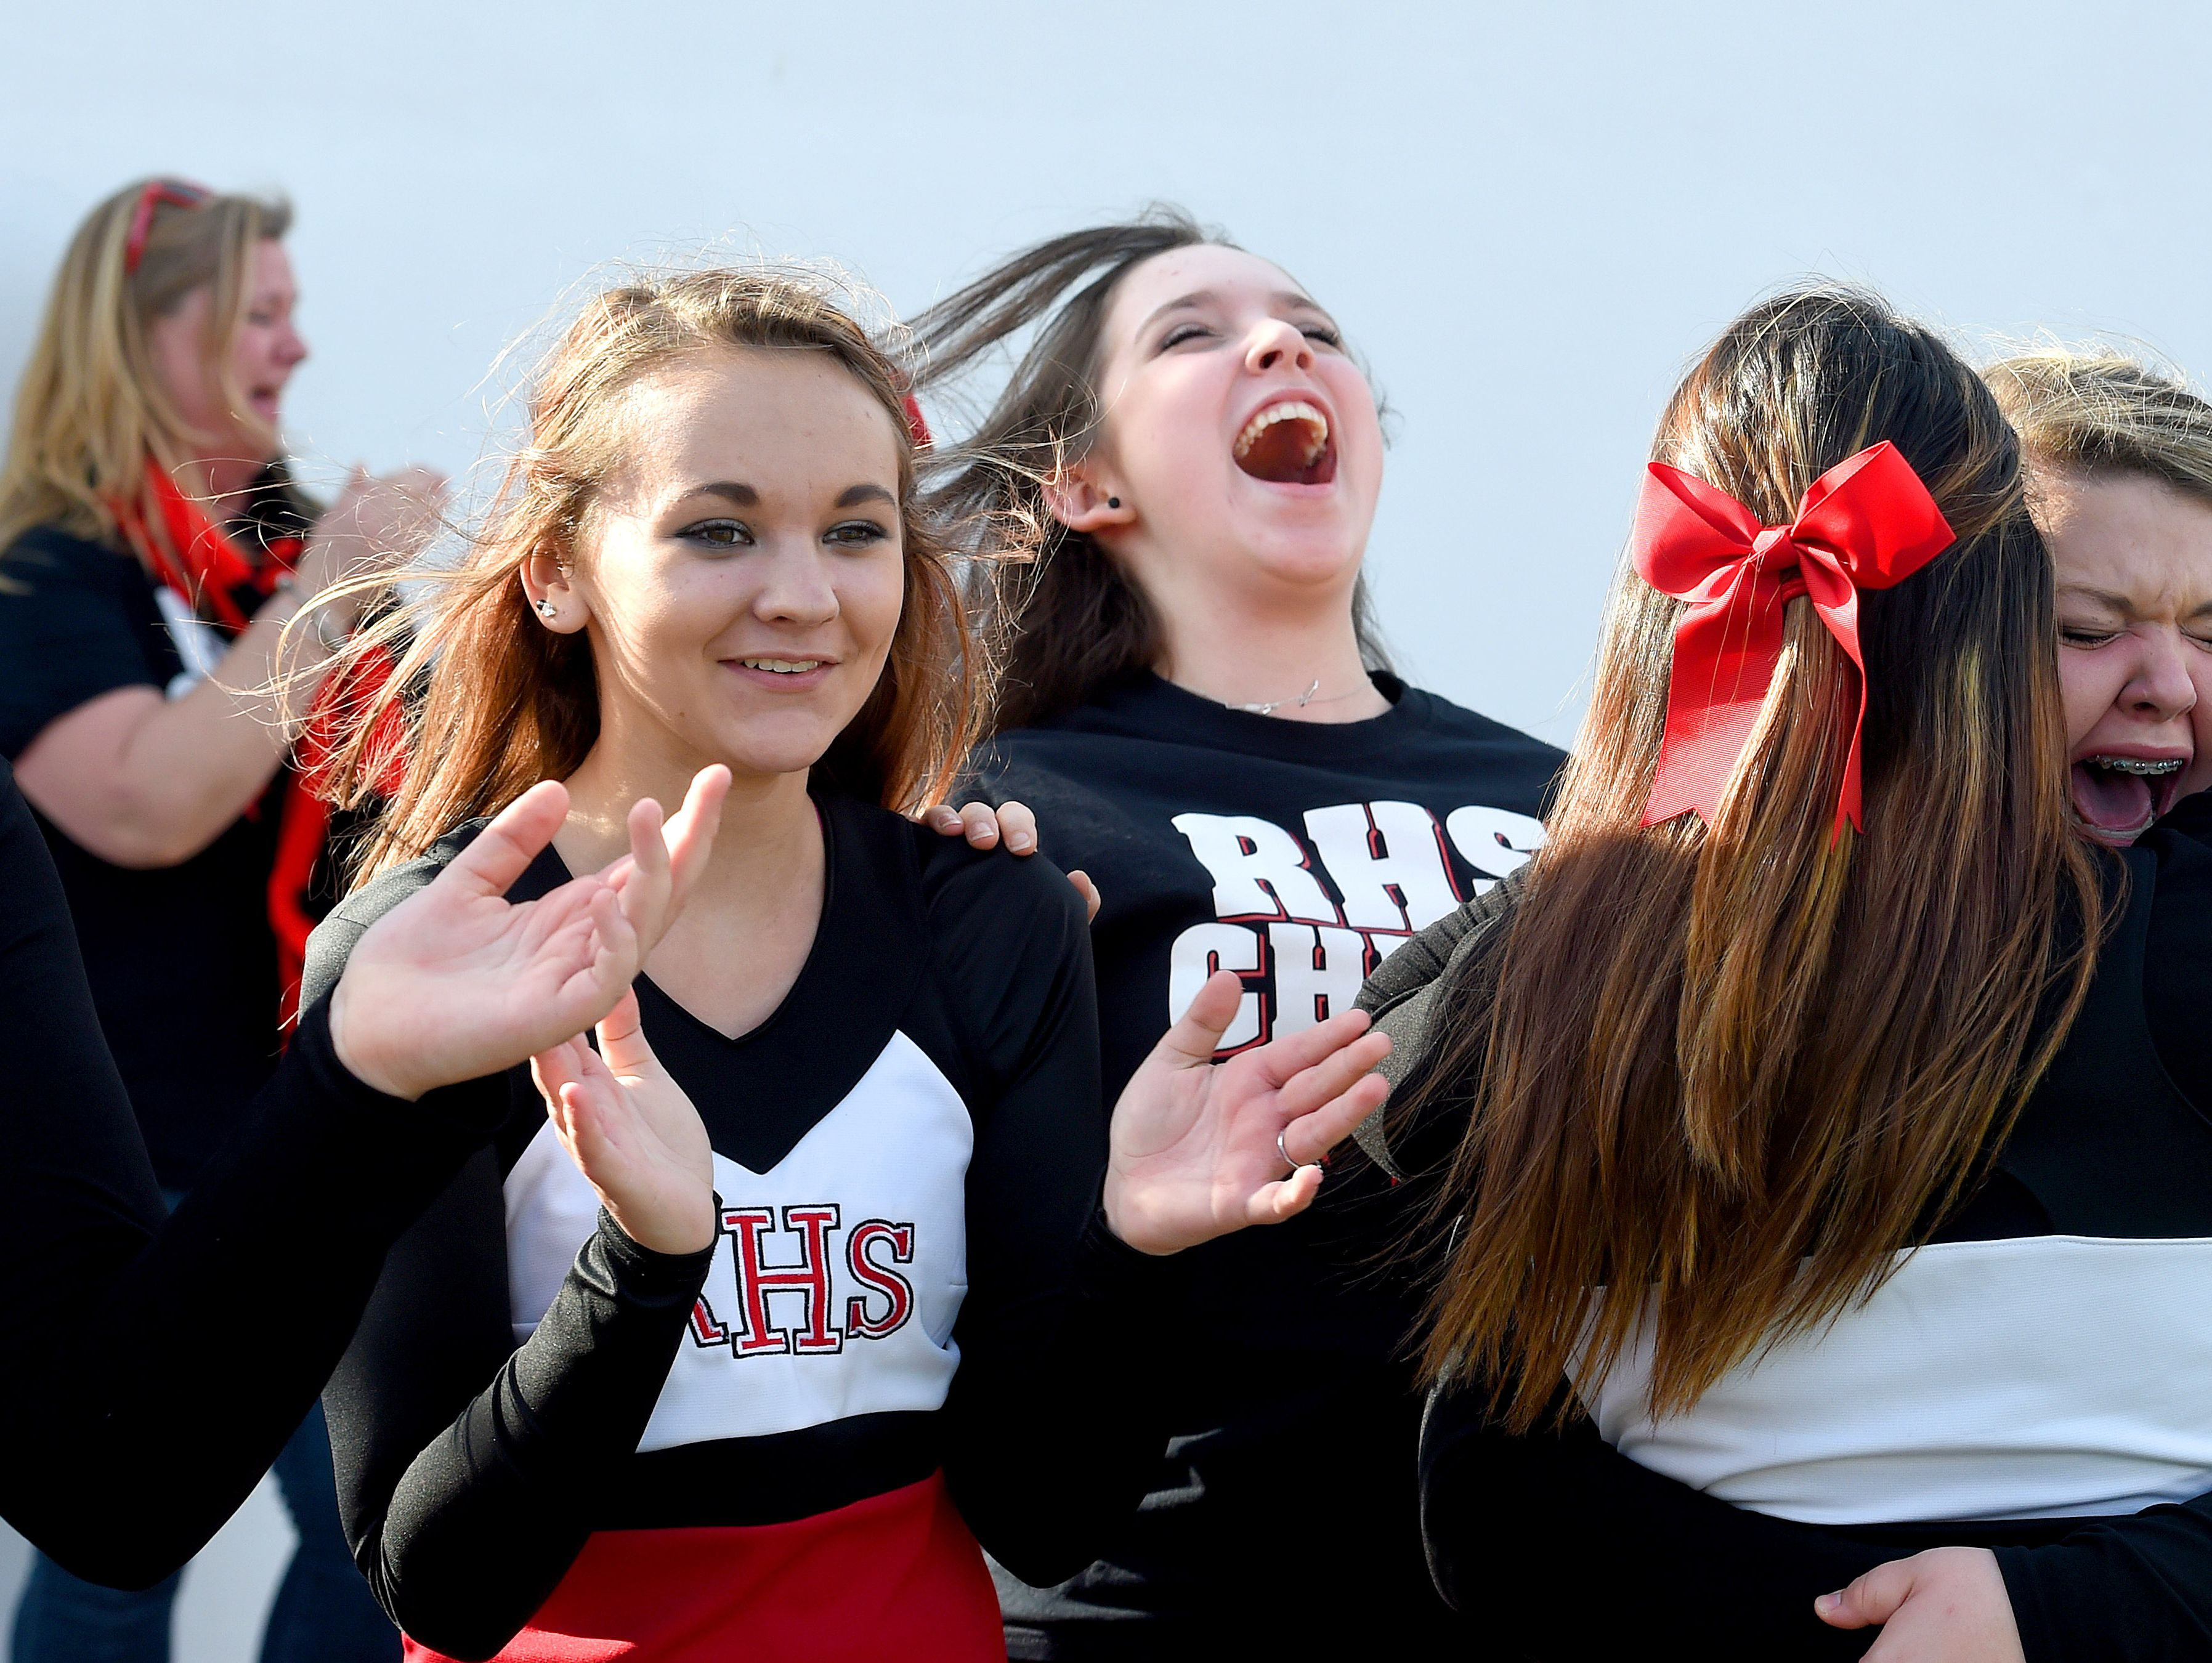 Riverheads' cheerleaders celebrate a touchdown by Taz Miller as time runs out on the clock during the Group 1A football championship in Salem on Saturday, Dec. 12, 2015. Riverheads lost to Galax 7-6.